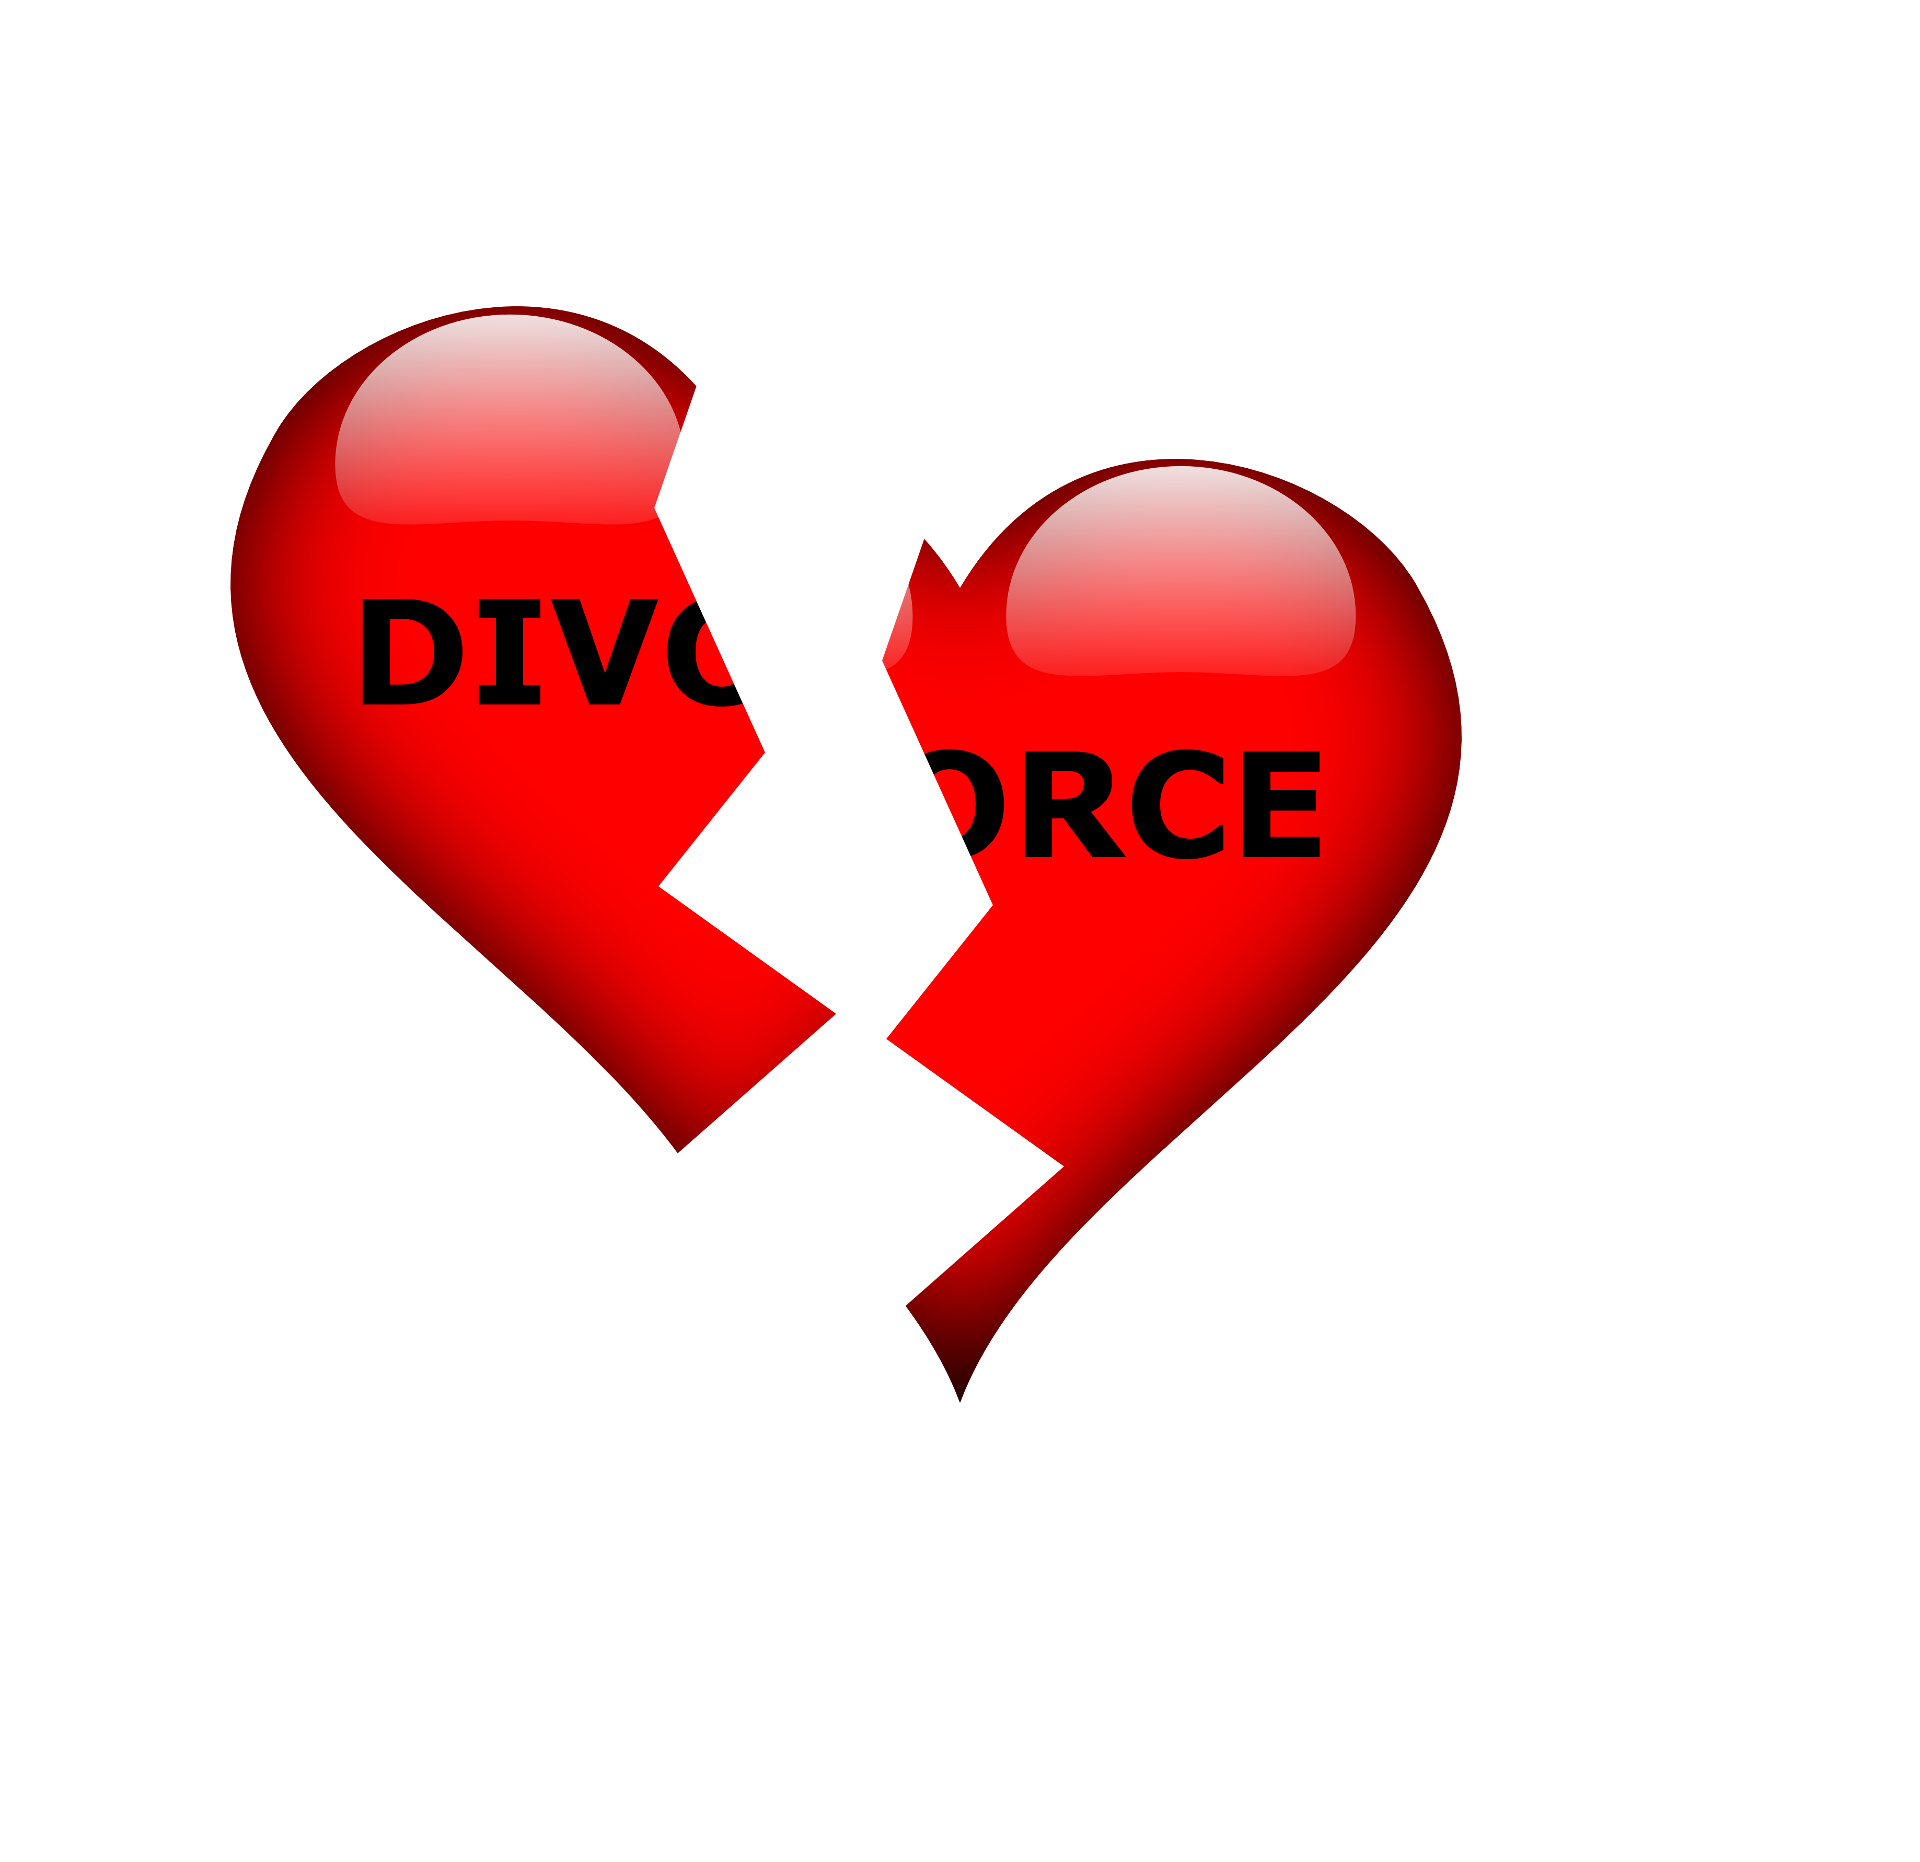 considering divorce: are you tangled up in thoughts or thinking clearly?